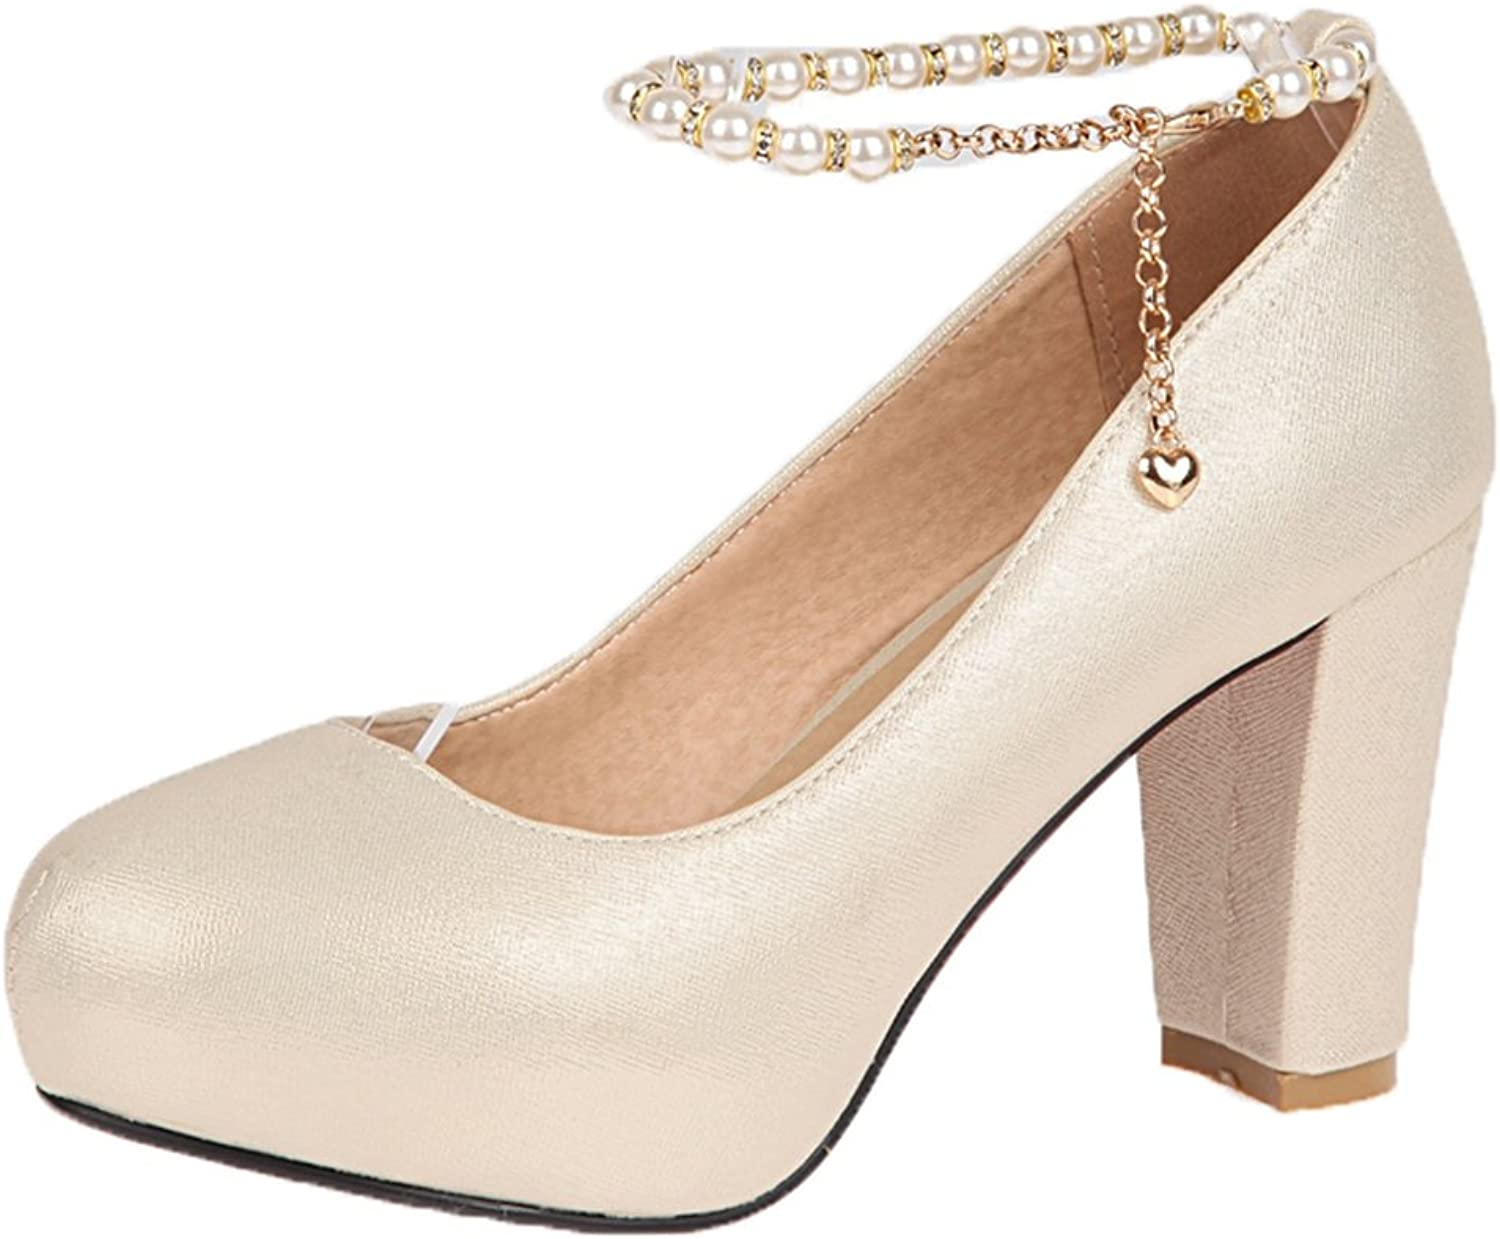 SaraIris Women's Chunky High Heel Pearl Ankle Strap Party Wedding Pumps